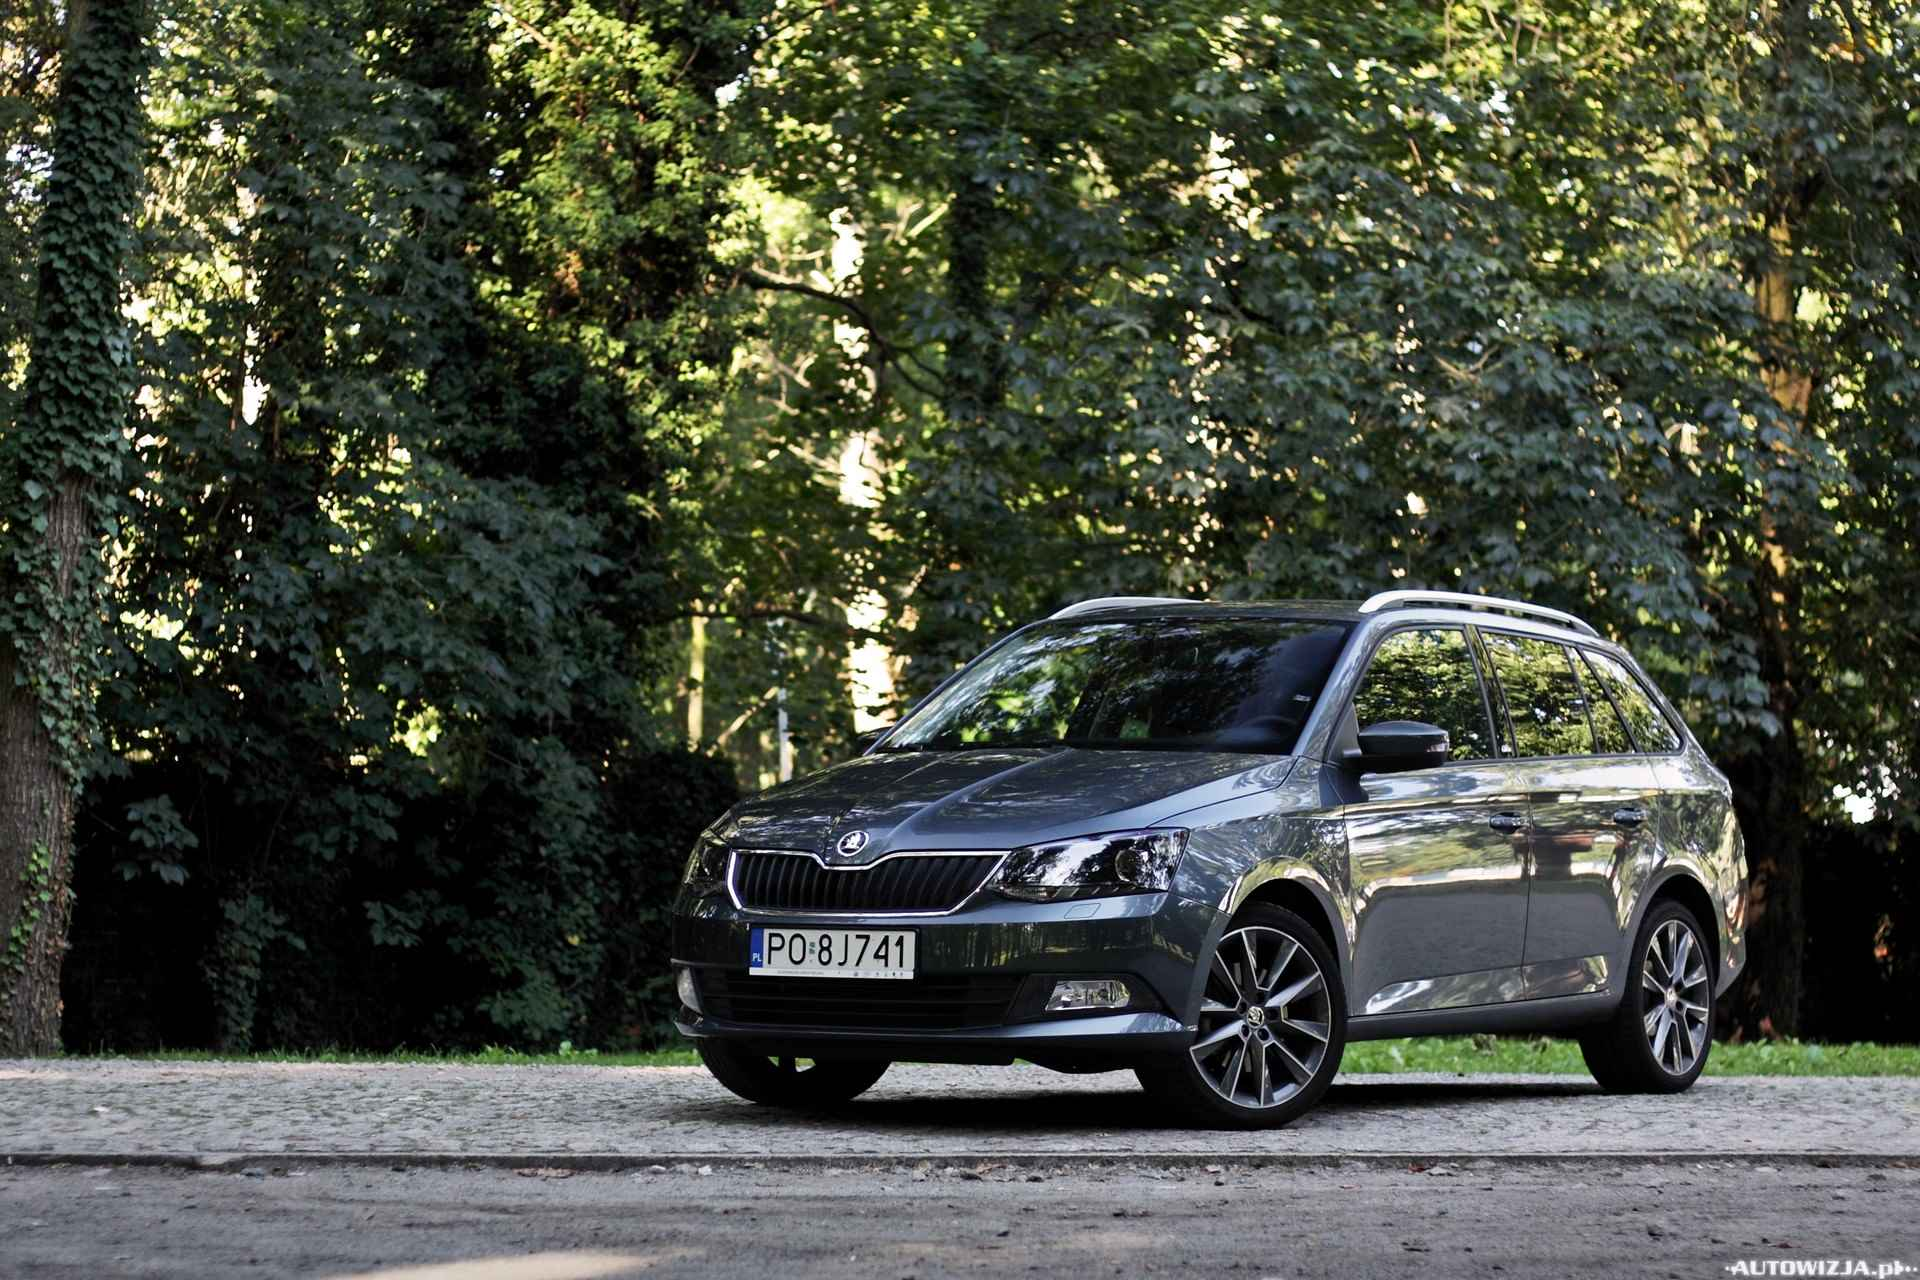 skoda fabia combi ambition 1 2 tsi 110 km dsg edition auto test motoryzacja. Black Bedroom Furniture Sets. Home Design Ideas